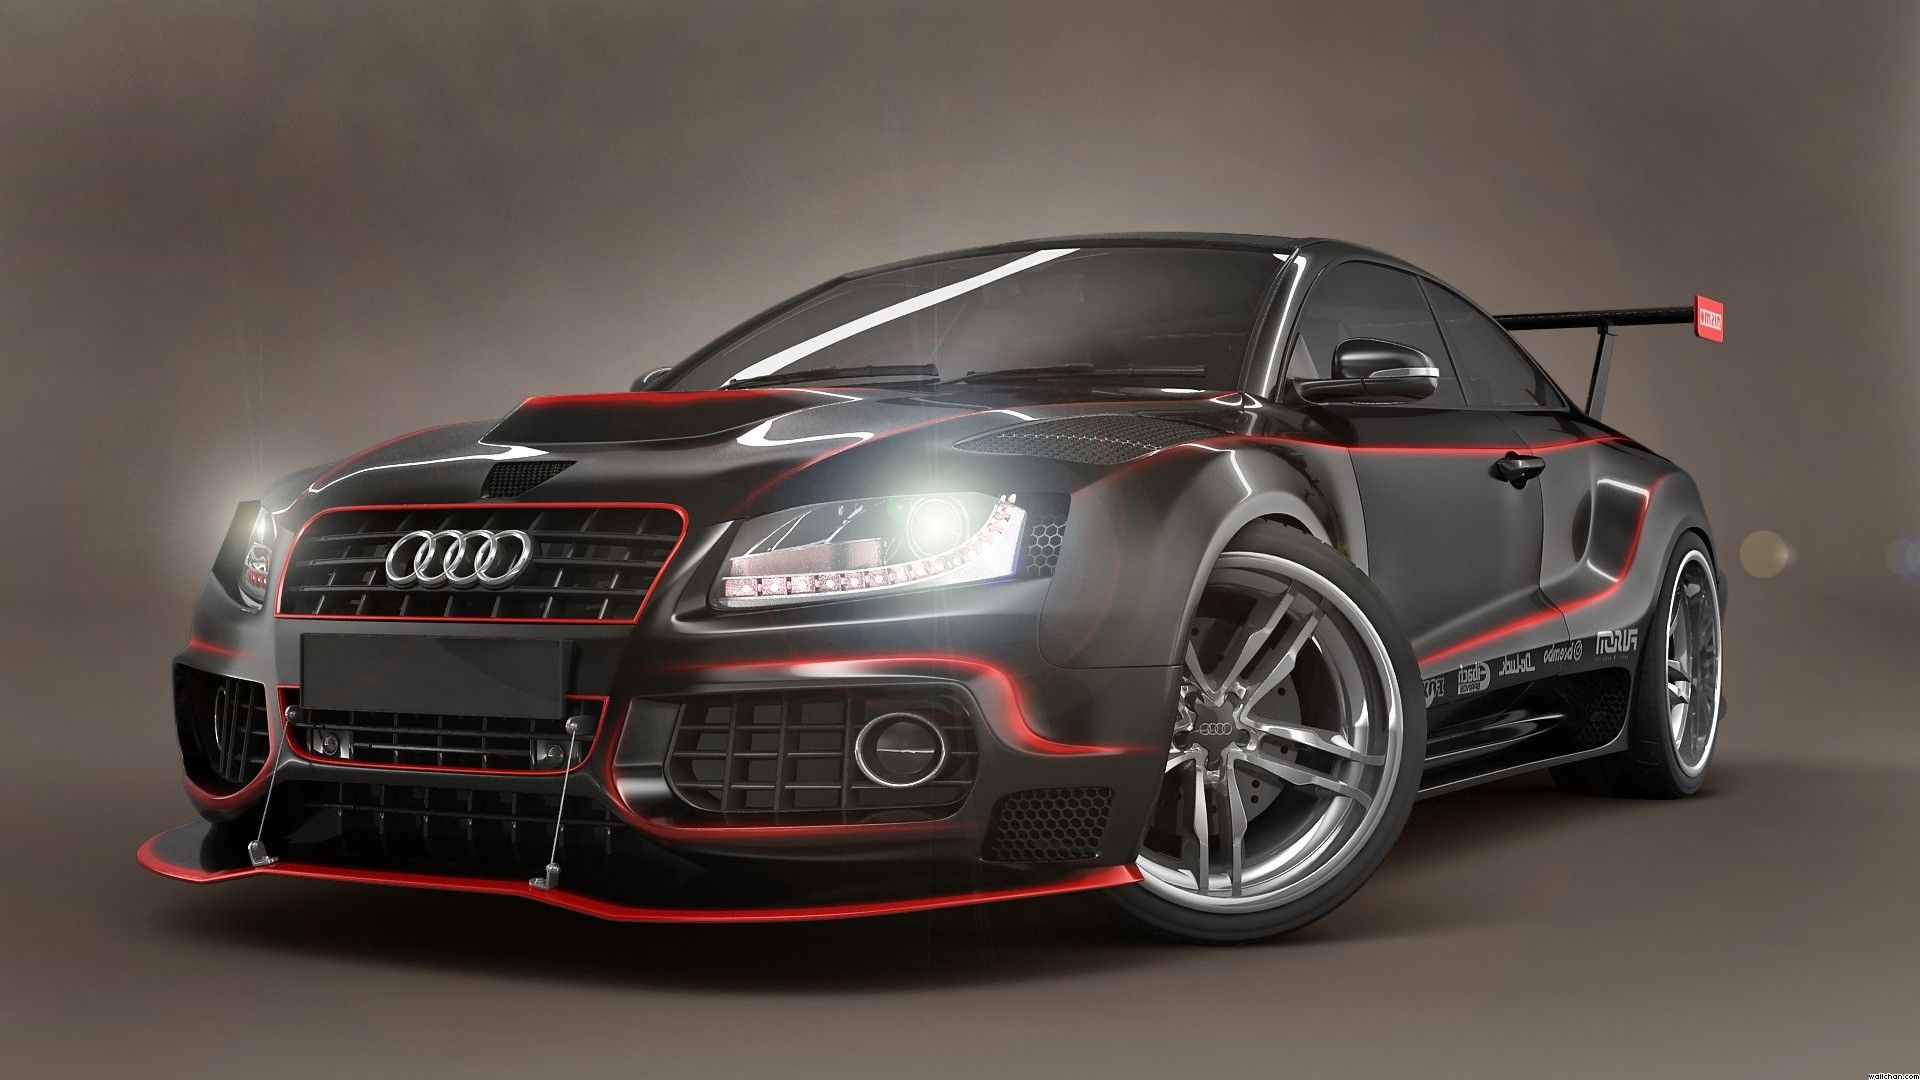 Best Audi Cars Modifications Wallpaper HD Wallpaper Audi - Best audi cars